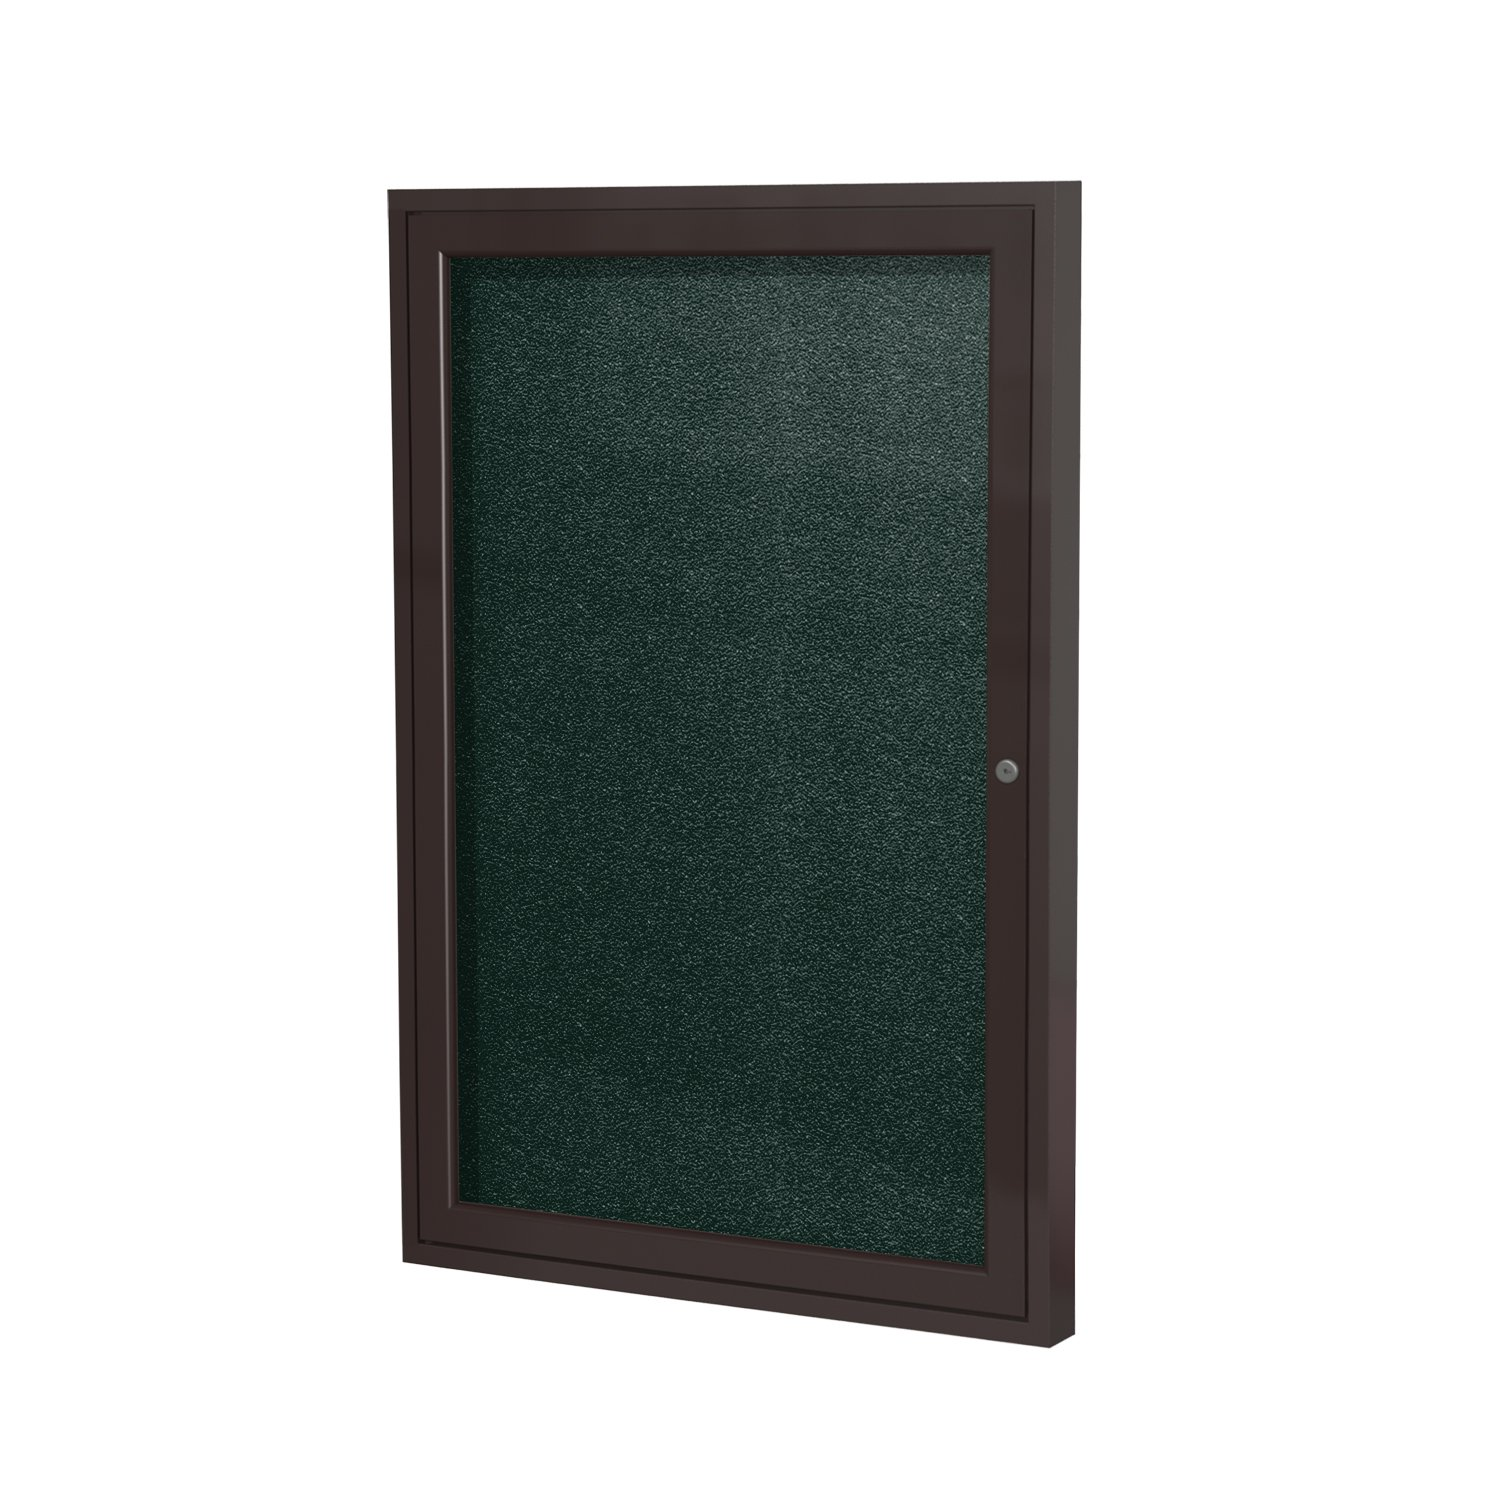 Ghent 36''x36''  1-Door Outdoor Enclosed Vinyl Bulletin Board, Shatter Resistant, with Lock, Bronze Aluminum Frame - Ebony (PB13636VX-183), Made in the USA